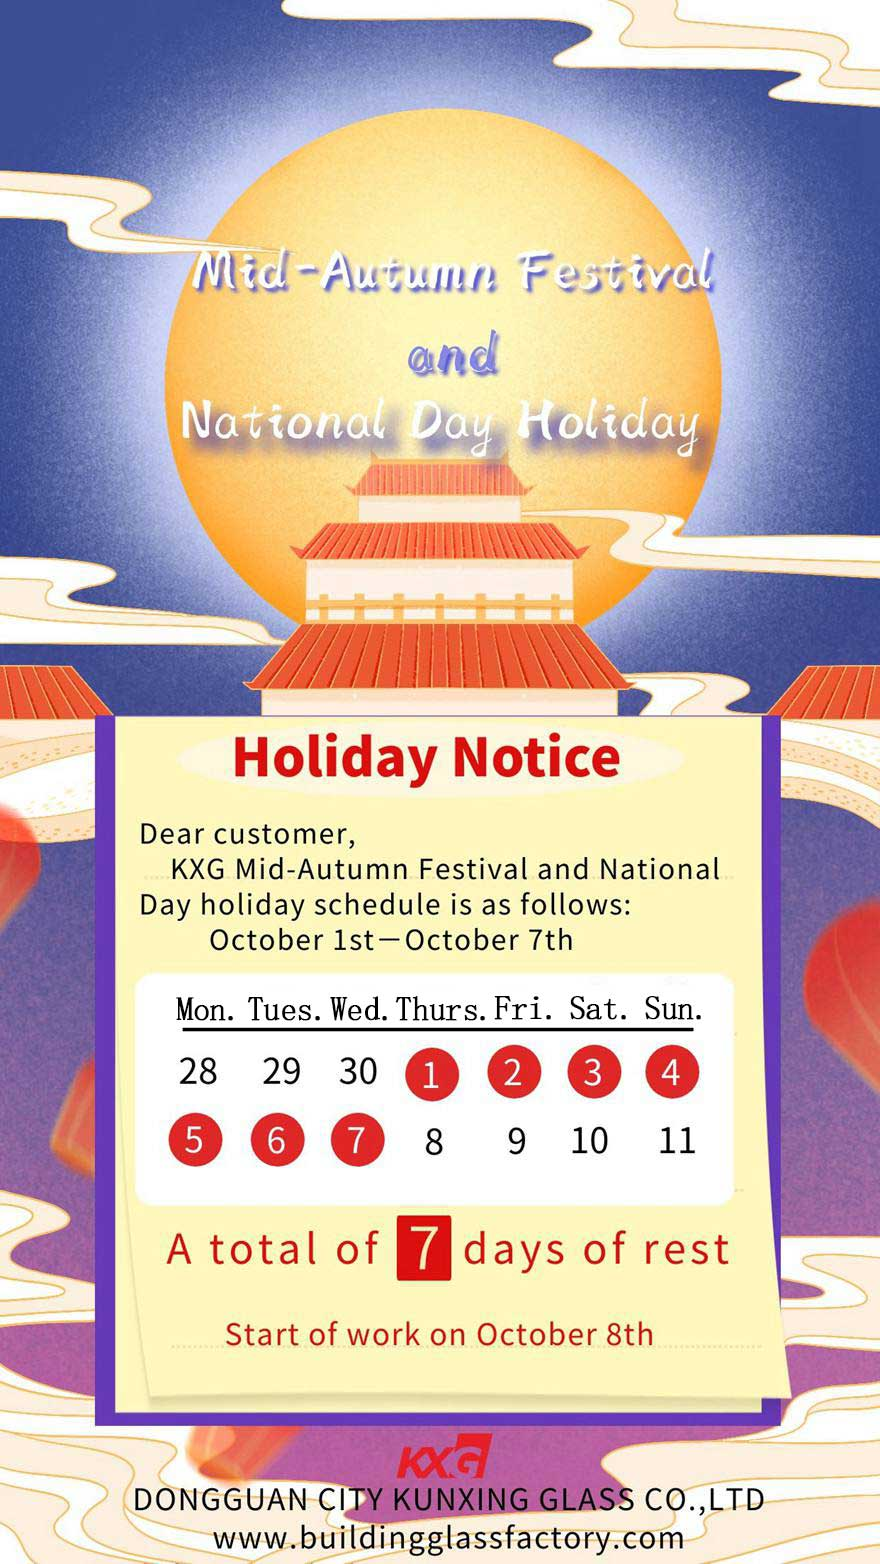 KXG Mid-Autumn Festival and National Day holiday notice